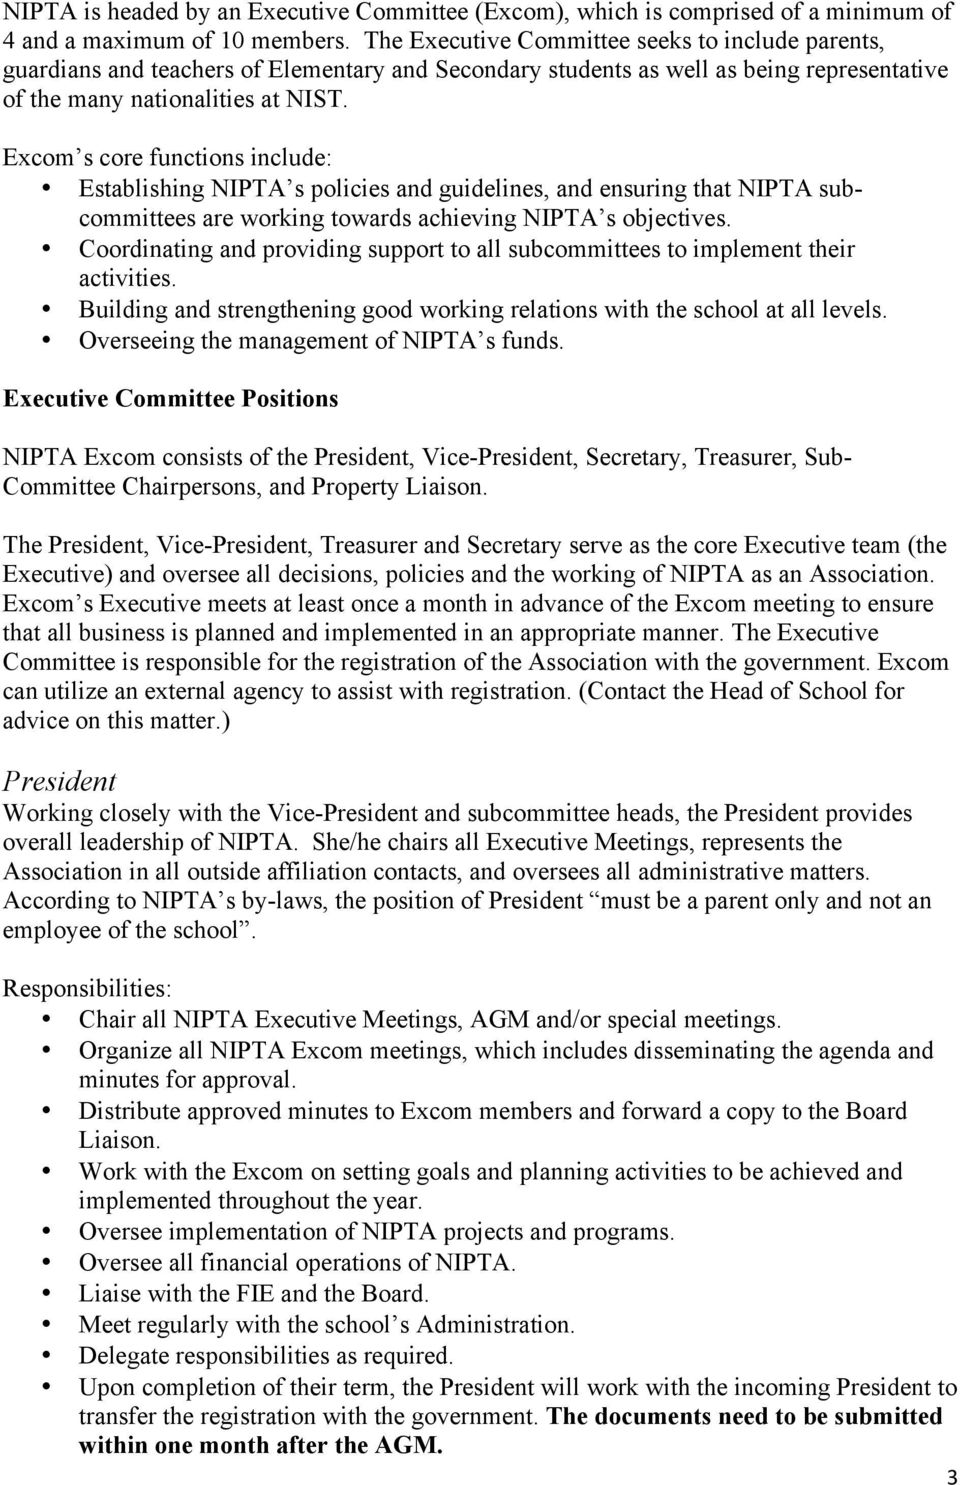 Excom s core functions include: Establishing NIPTA s policies and guidelines, and ensuring that NIPTA subcommittees are working towards achieving NIPTA s objectives.